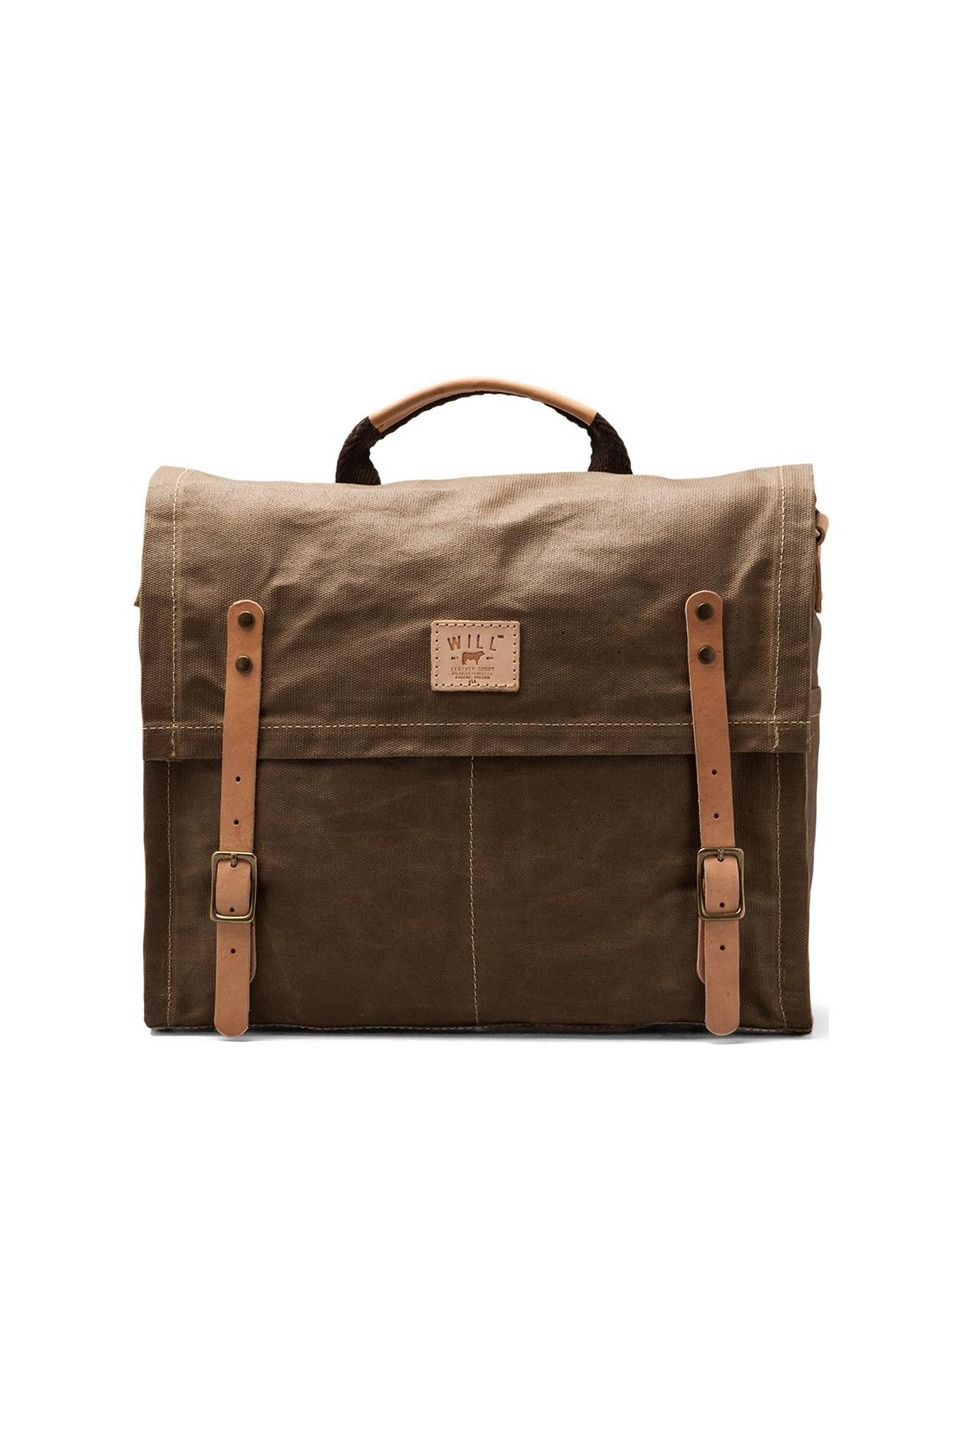 WILL Leather Goods Wax Coated Canvas Messenger in Khaki